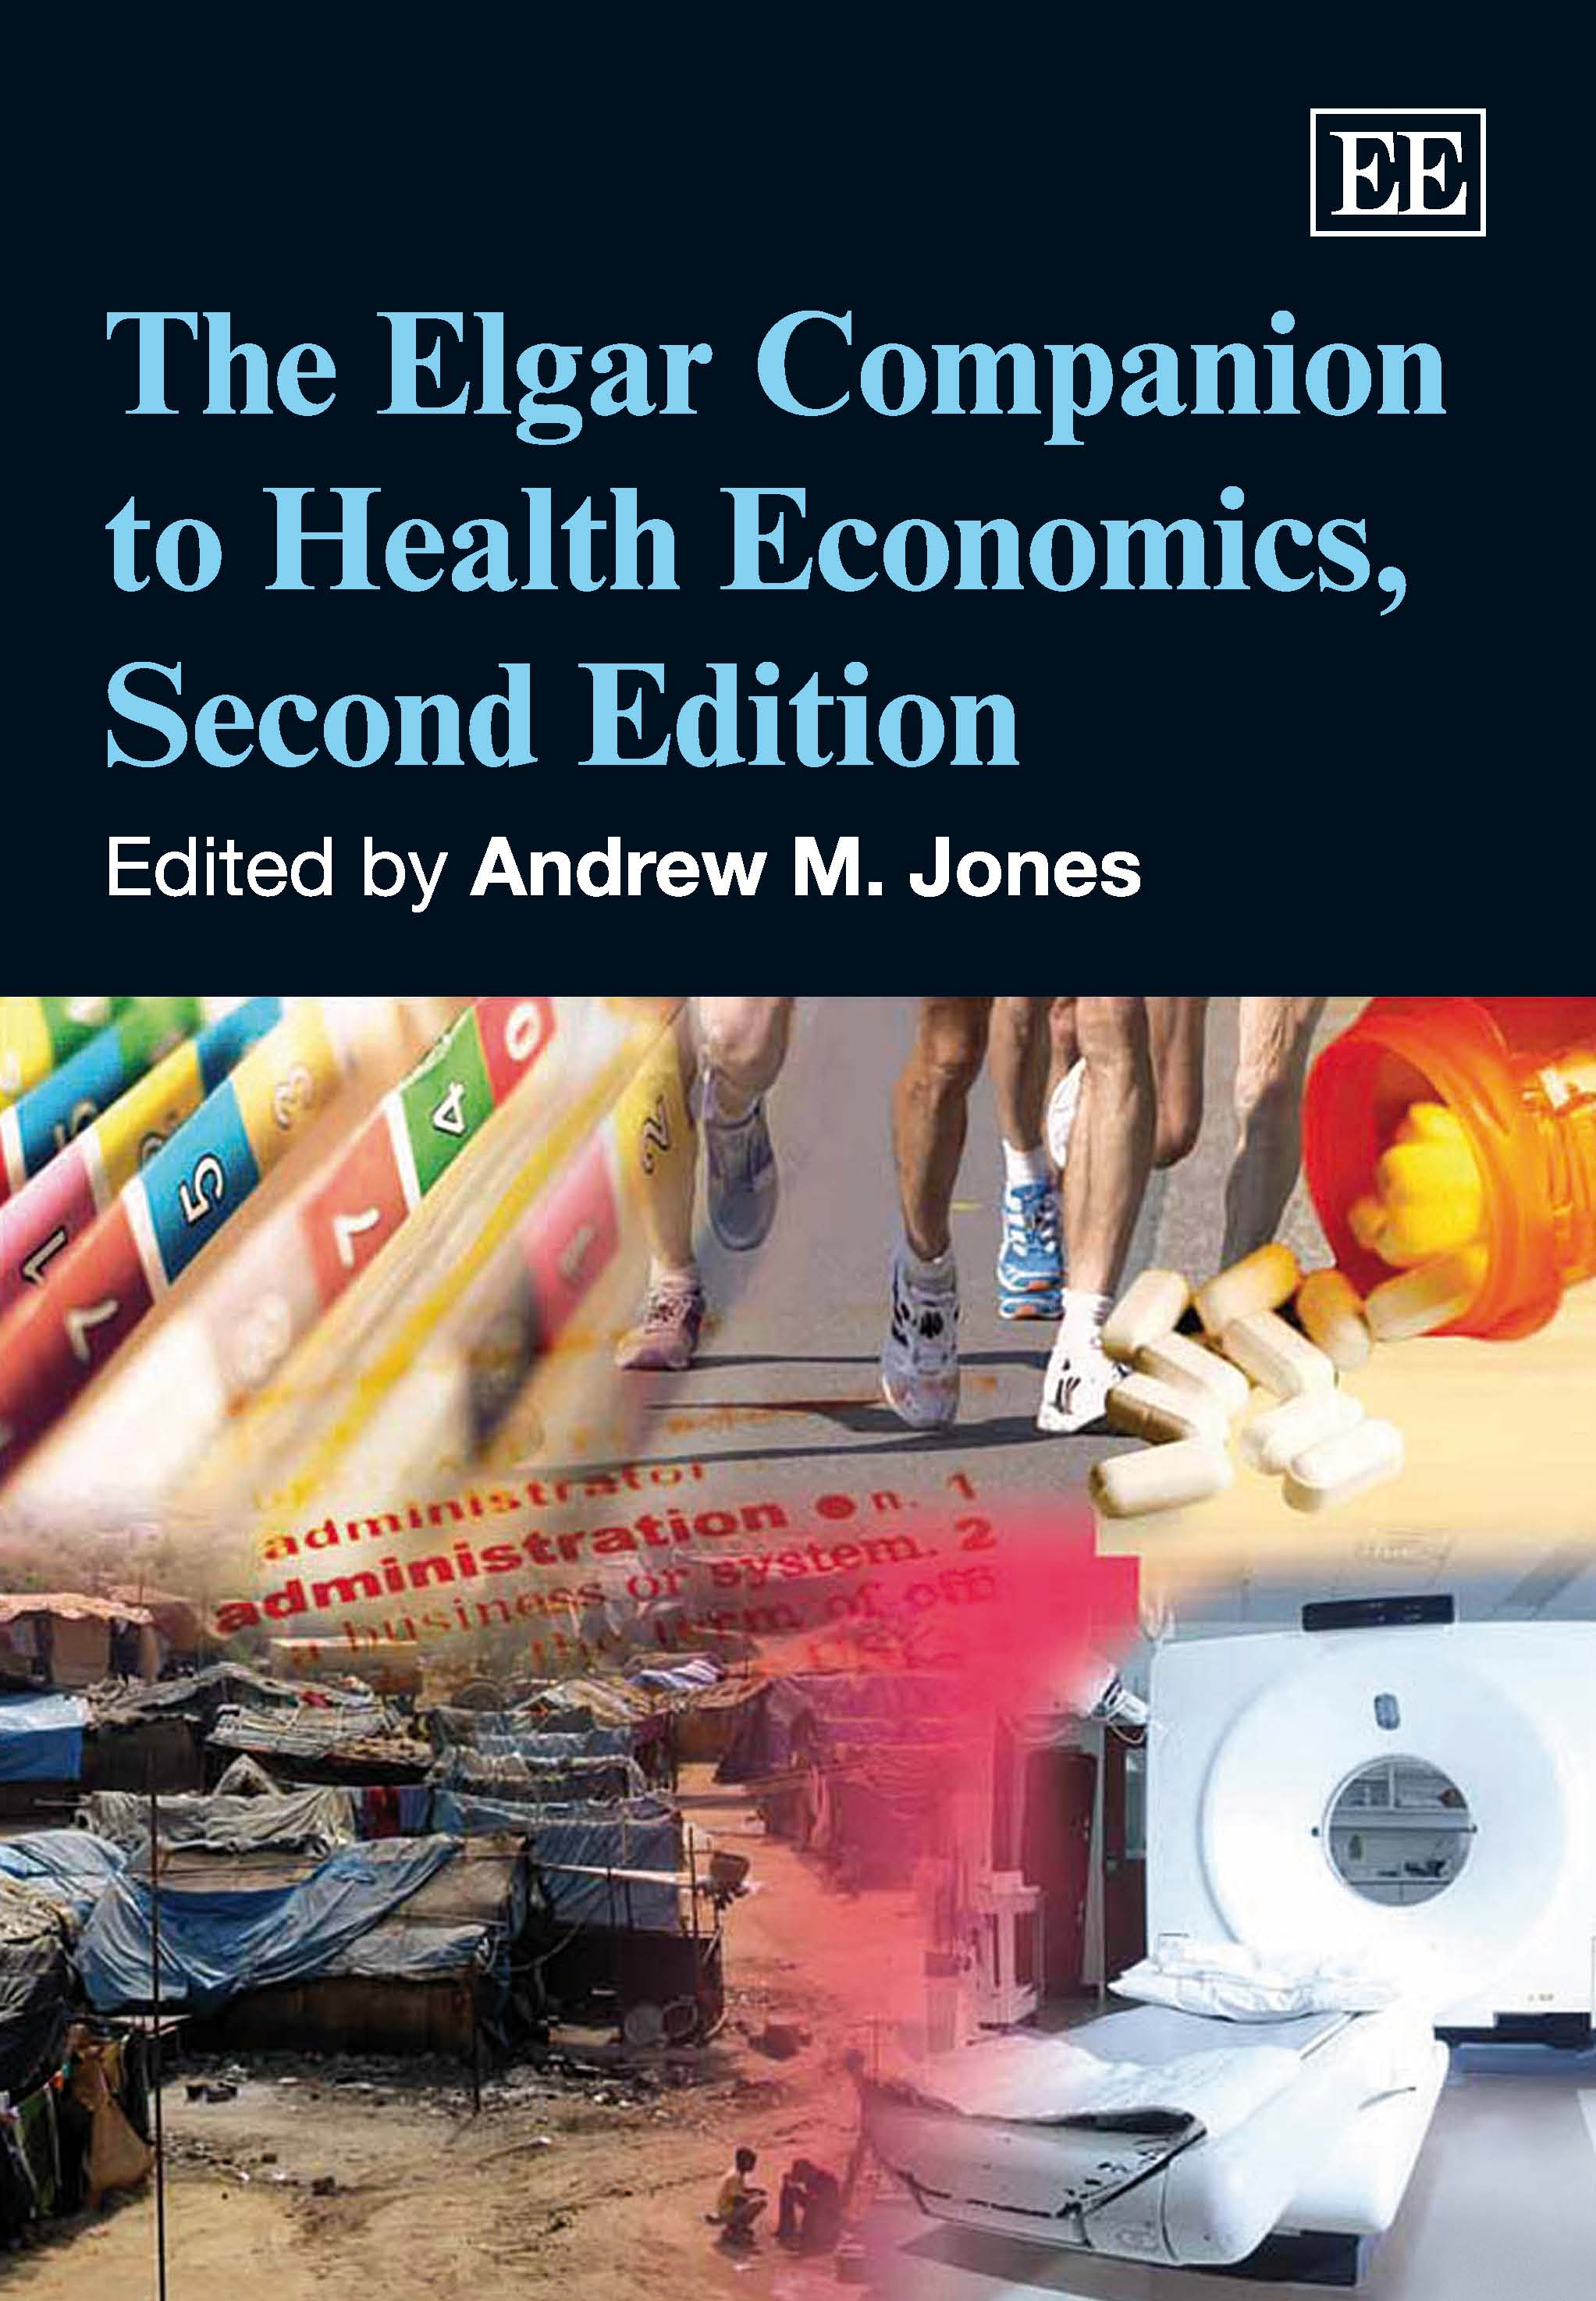 The Elgar Companion to Health Economics, Second Edition